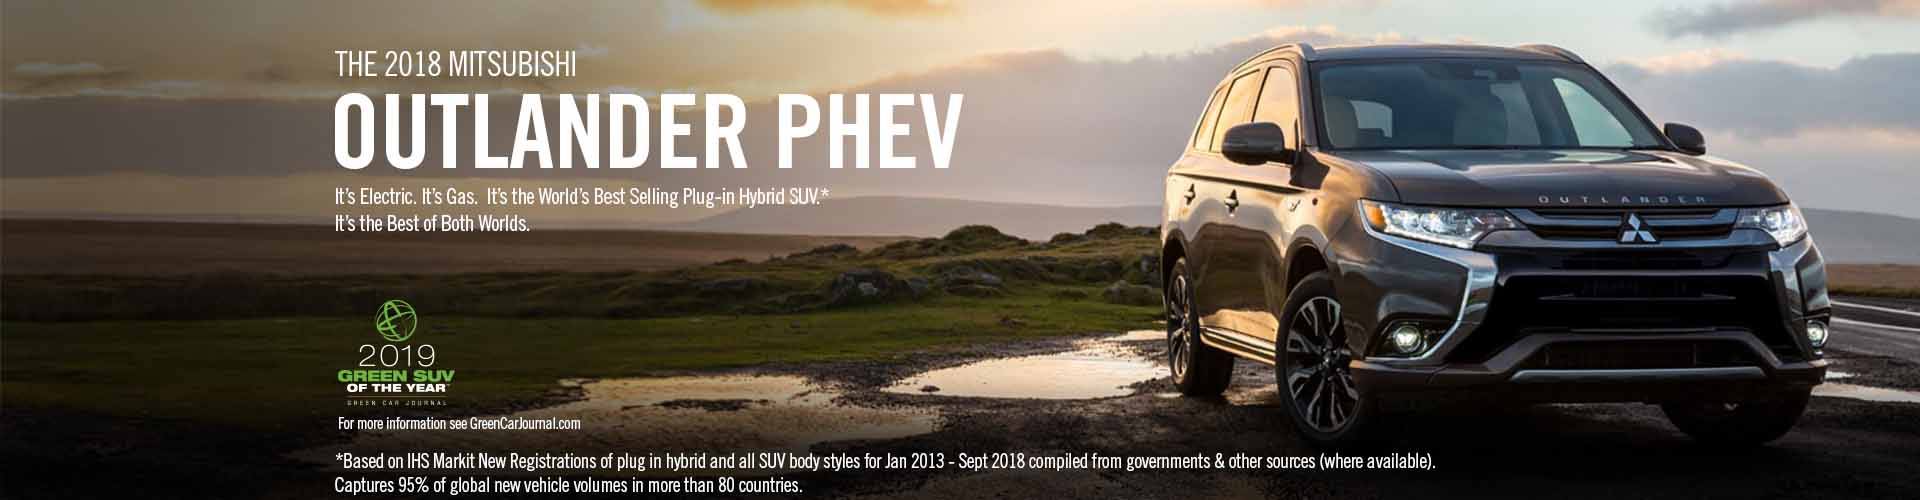 2018 Outlander PHEV Updated 1920x500